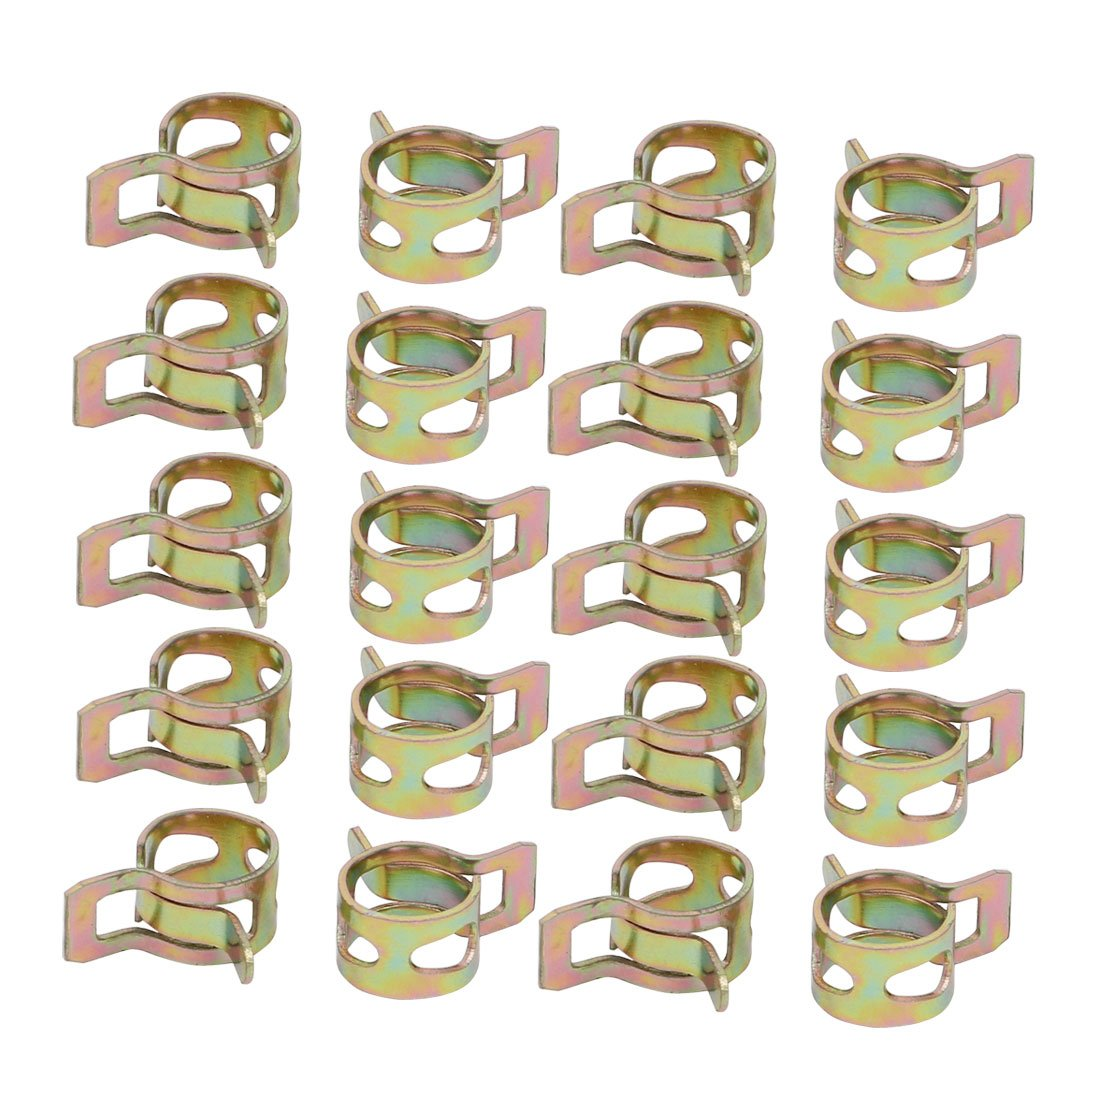 uxcell 20 Pcs 8mm Spring Band Type Action Fuel Hose Pipe Air Clamp Bronze Tone